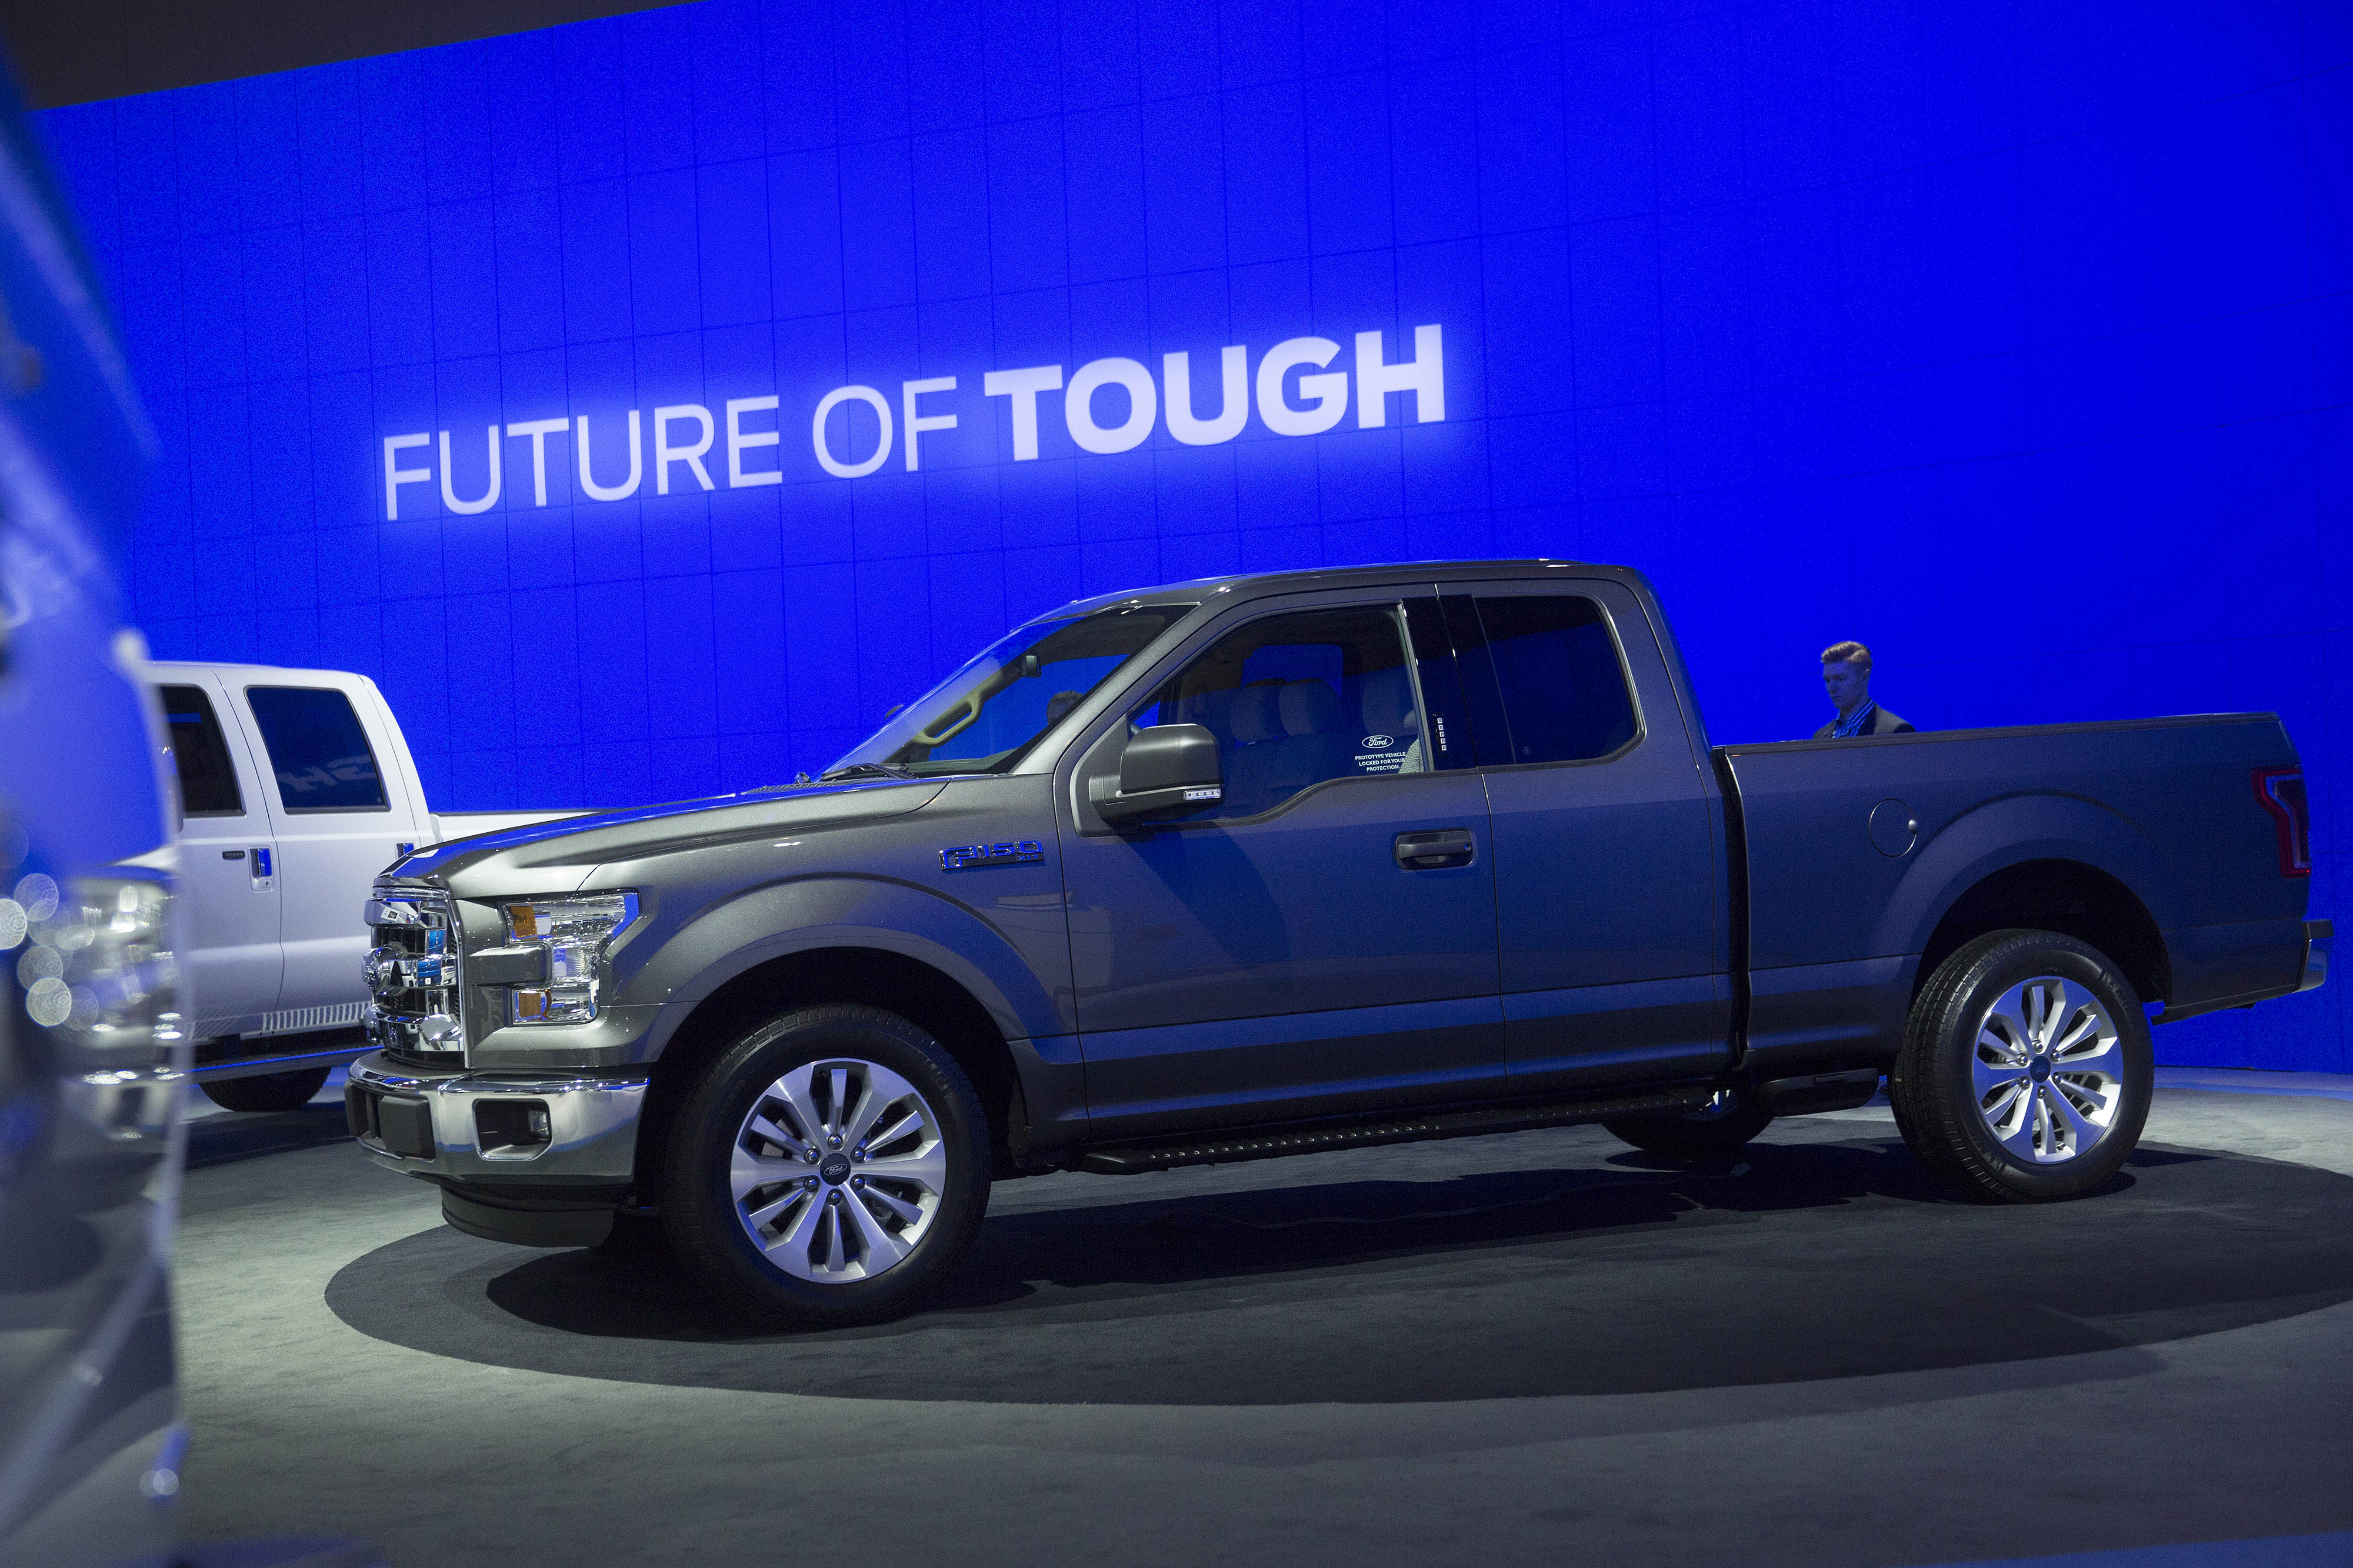 An attendee looks at the Ford Motor Co. F-150 pickup truck during the Washington Auto Show in Washington, D.C., U.S., on Wednesday, Jan. 22, 2014.